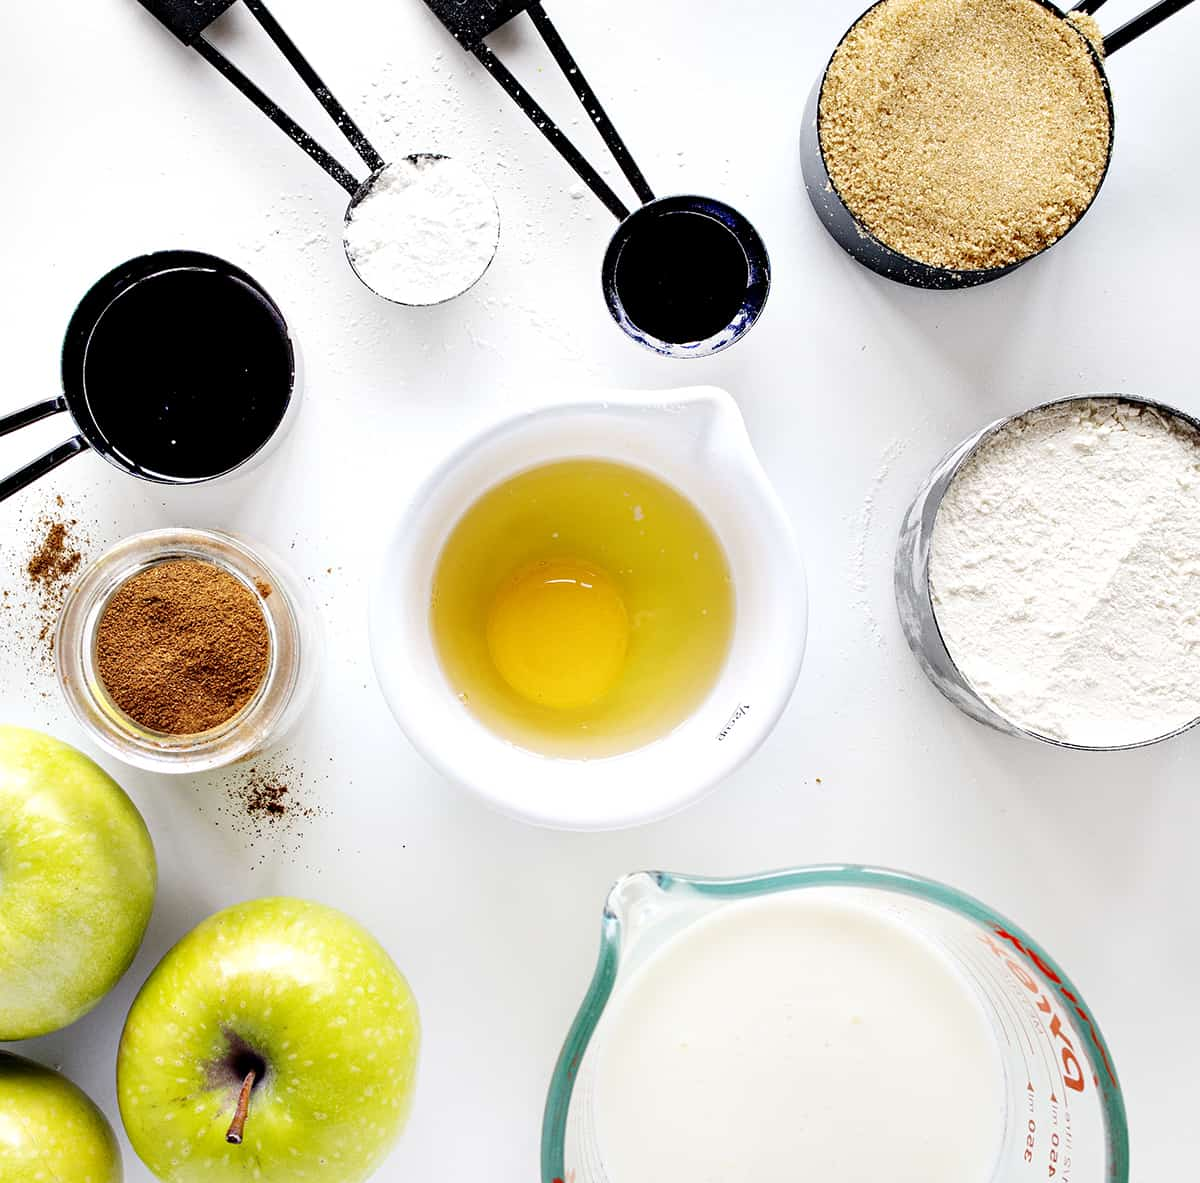 Ingredients for Spiced Apple Pancakes